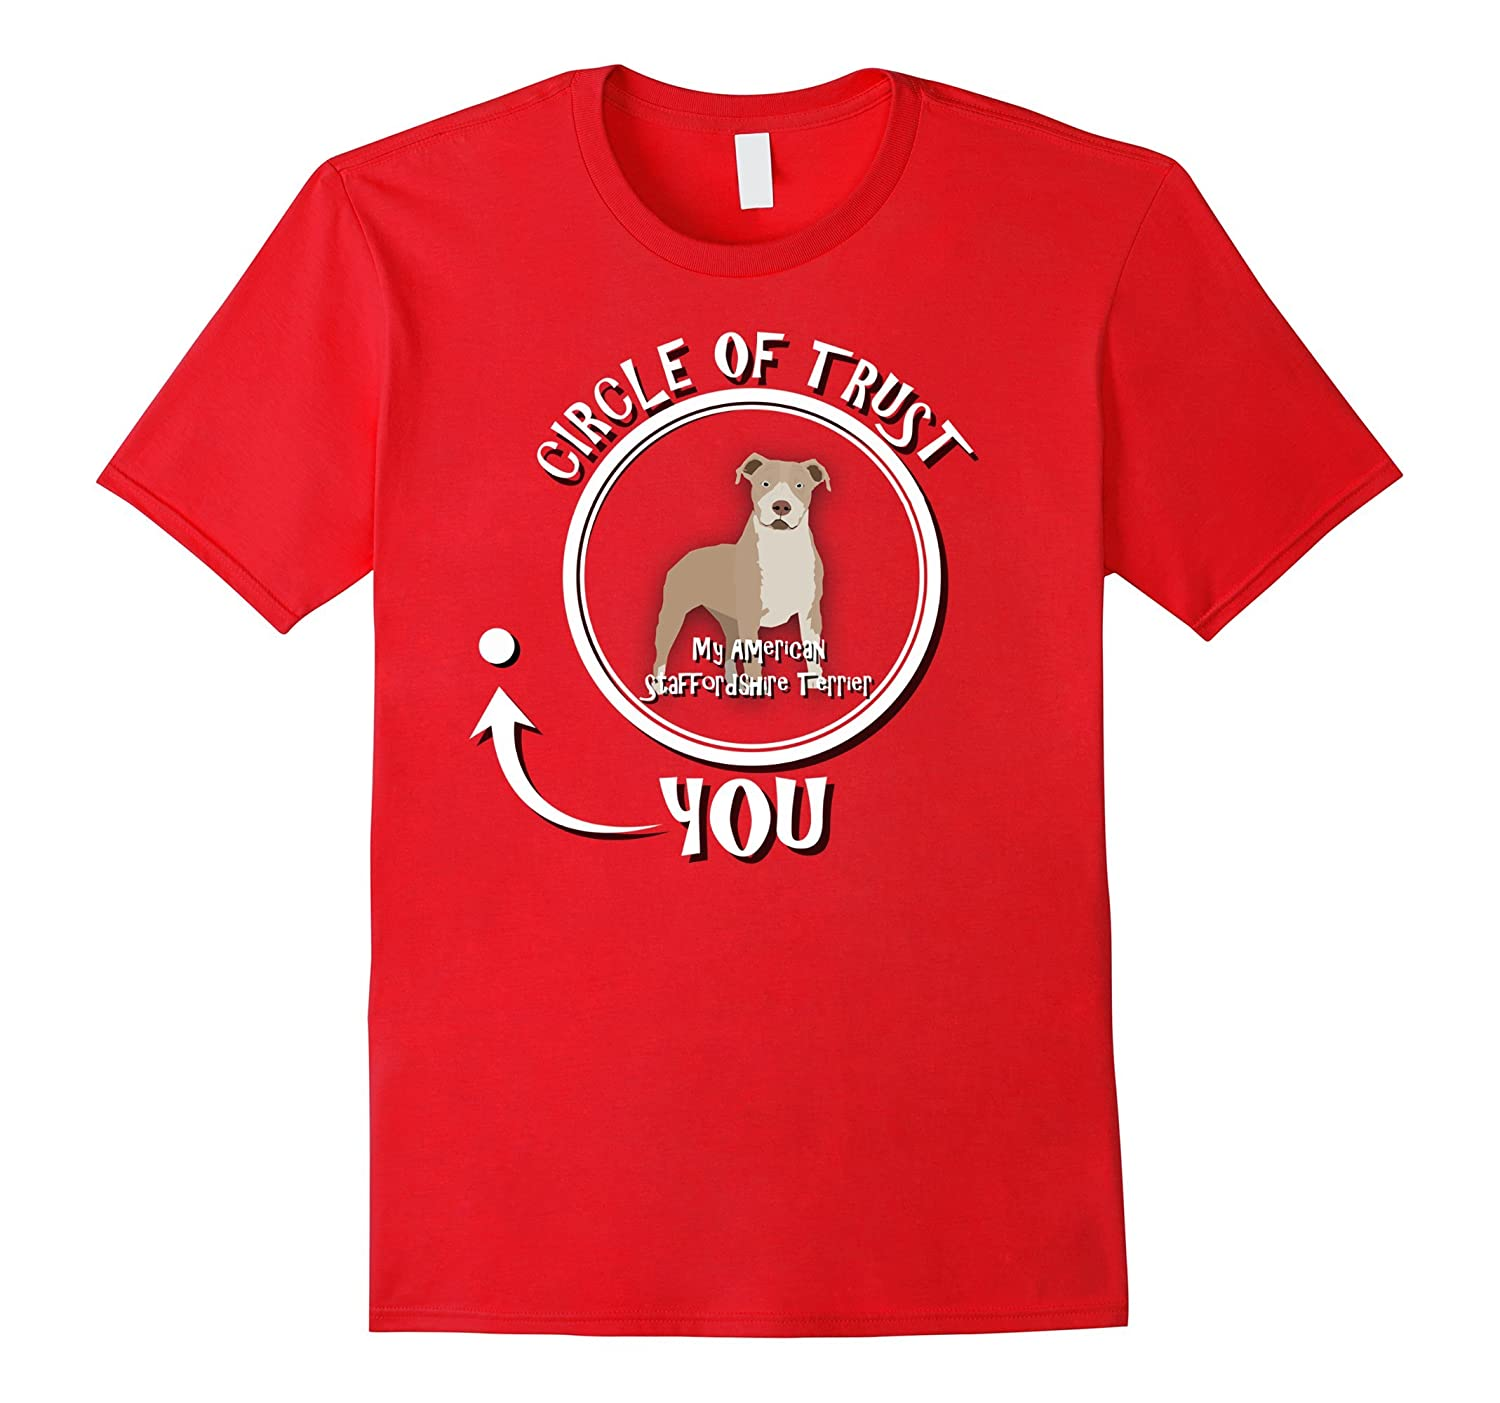 American Staffordshire Terrier T-shirt  Circle of trust-TH